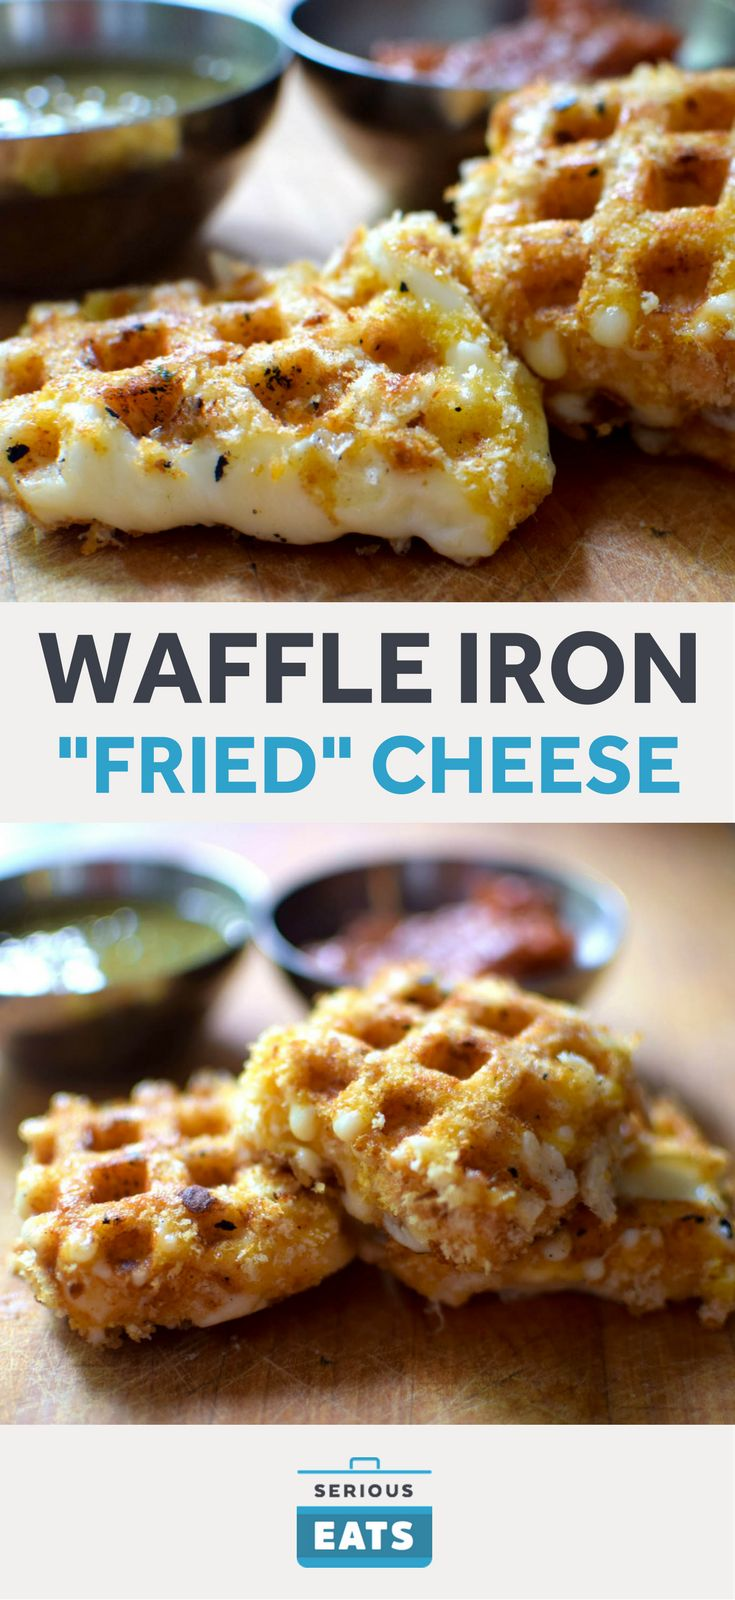 Yes, you can waffle cheese.